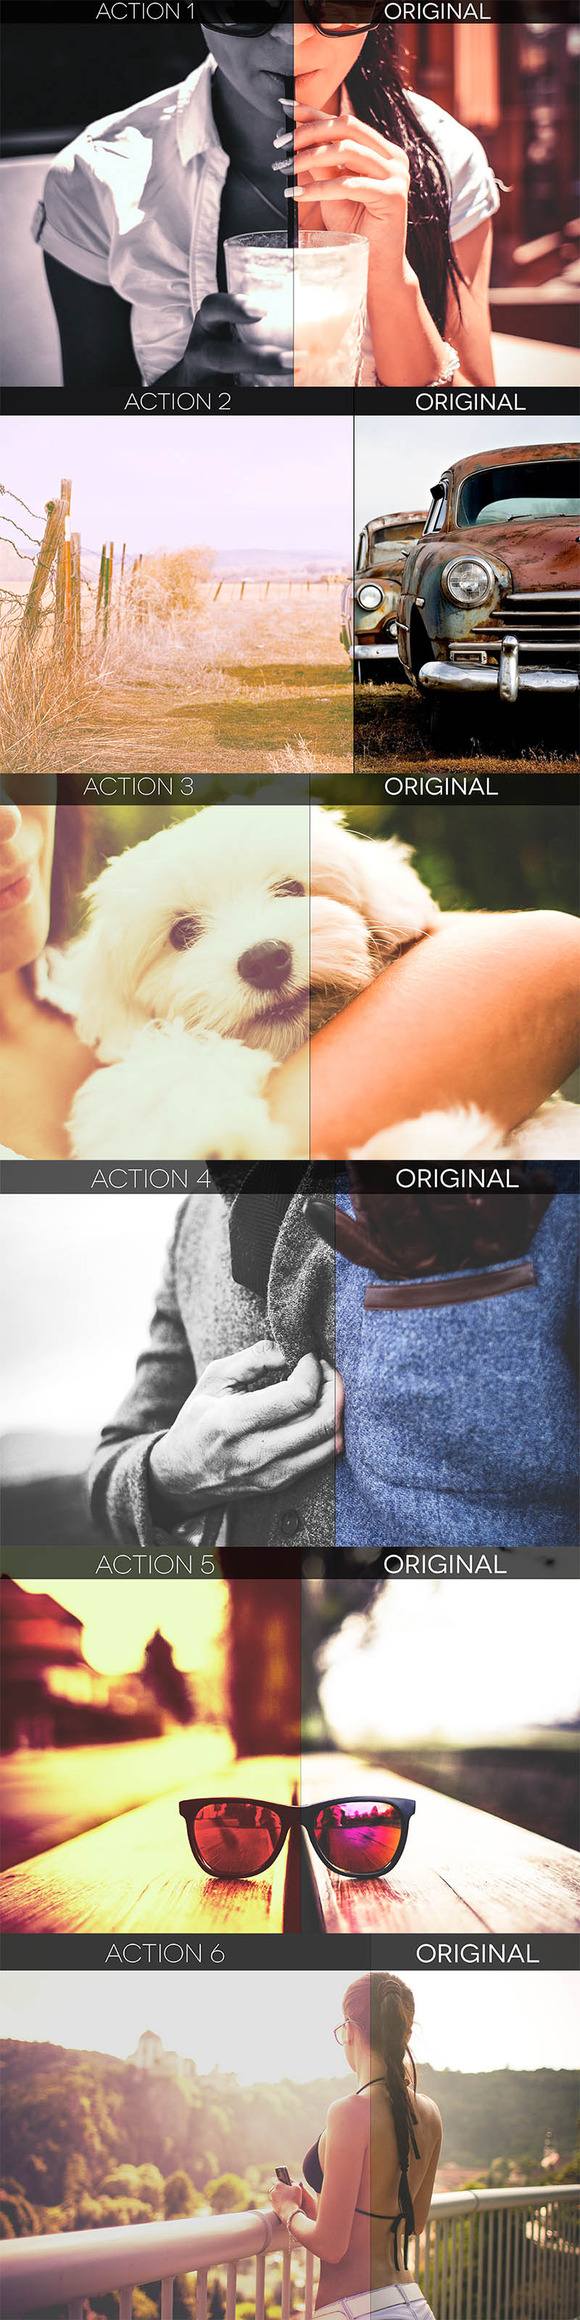 Pure 6Photoshop Actions Photo FXS